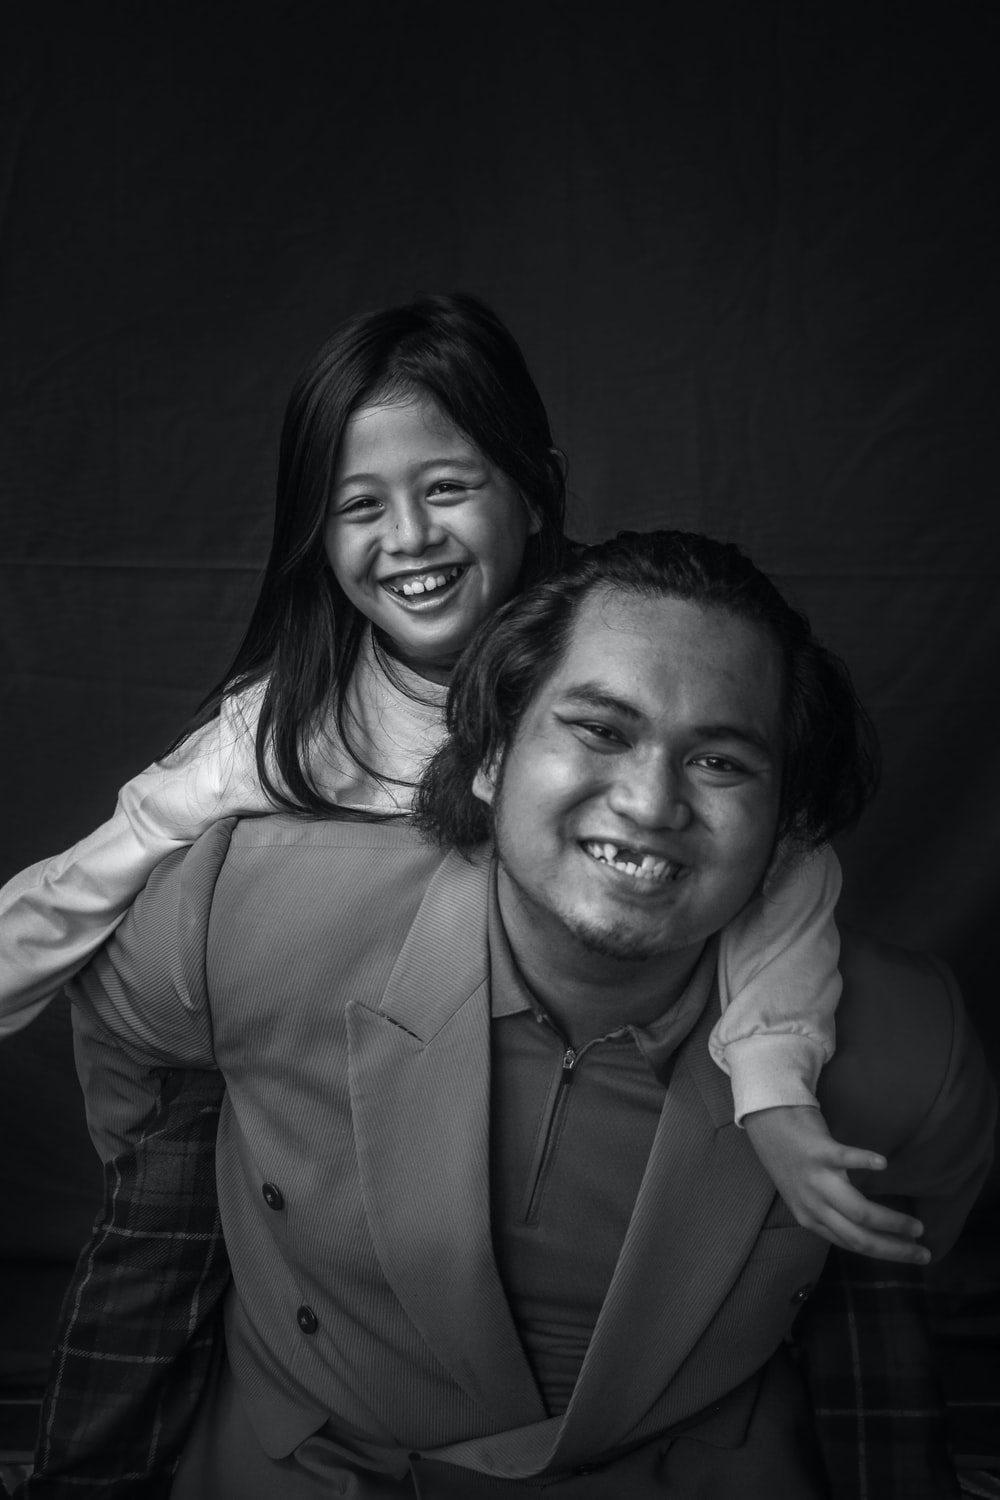 grayscale photo of man and woman smiling